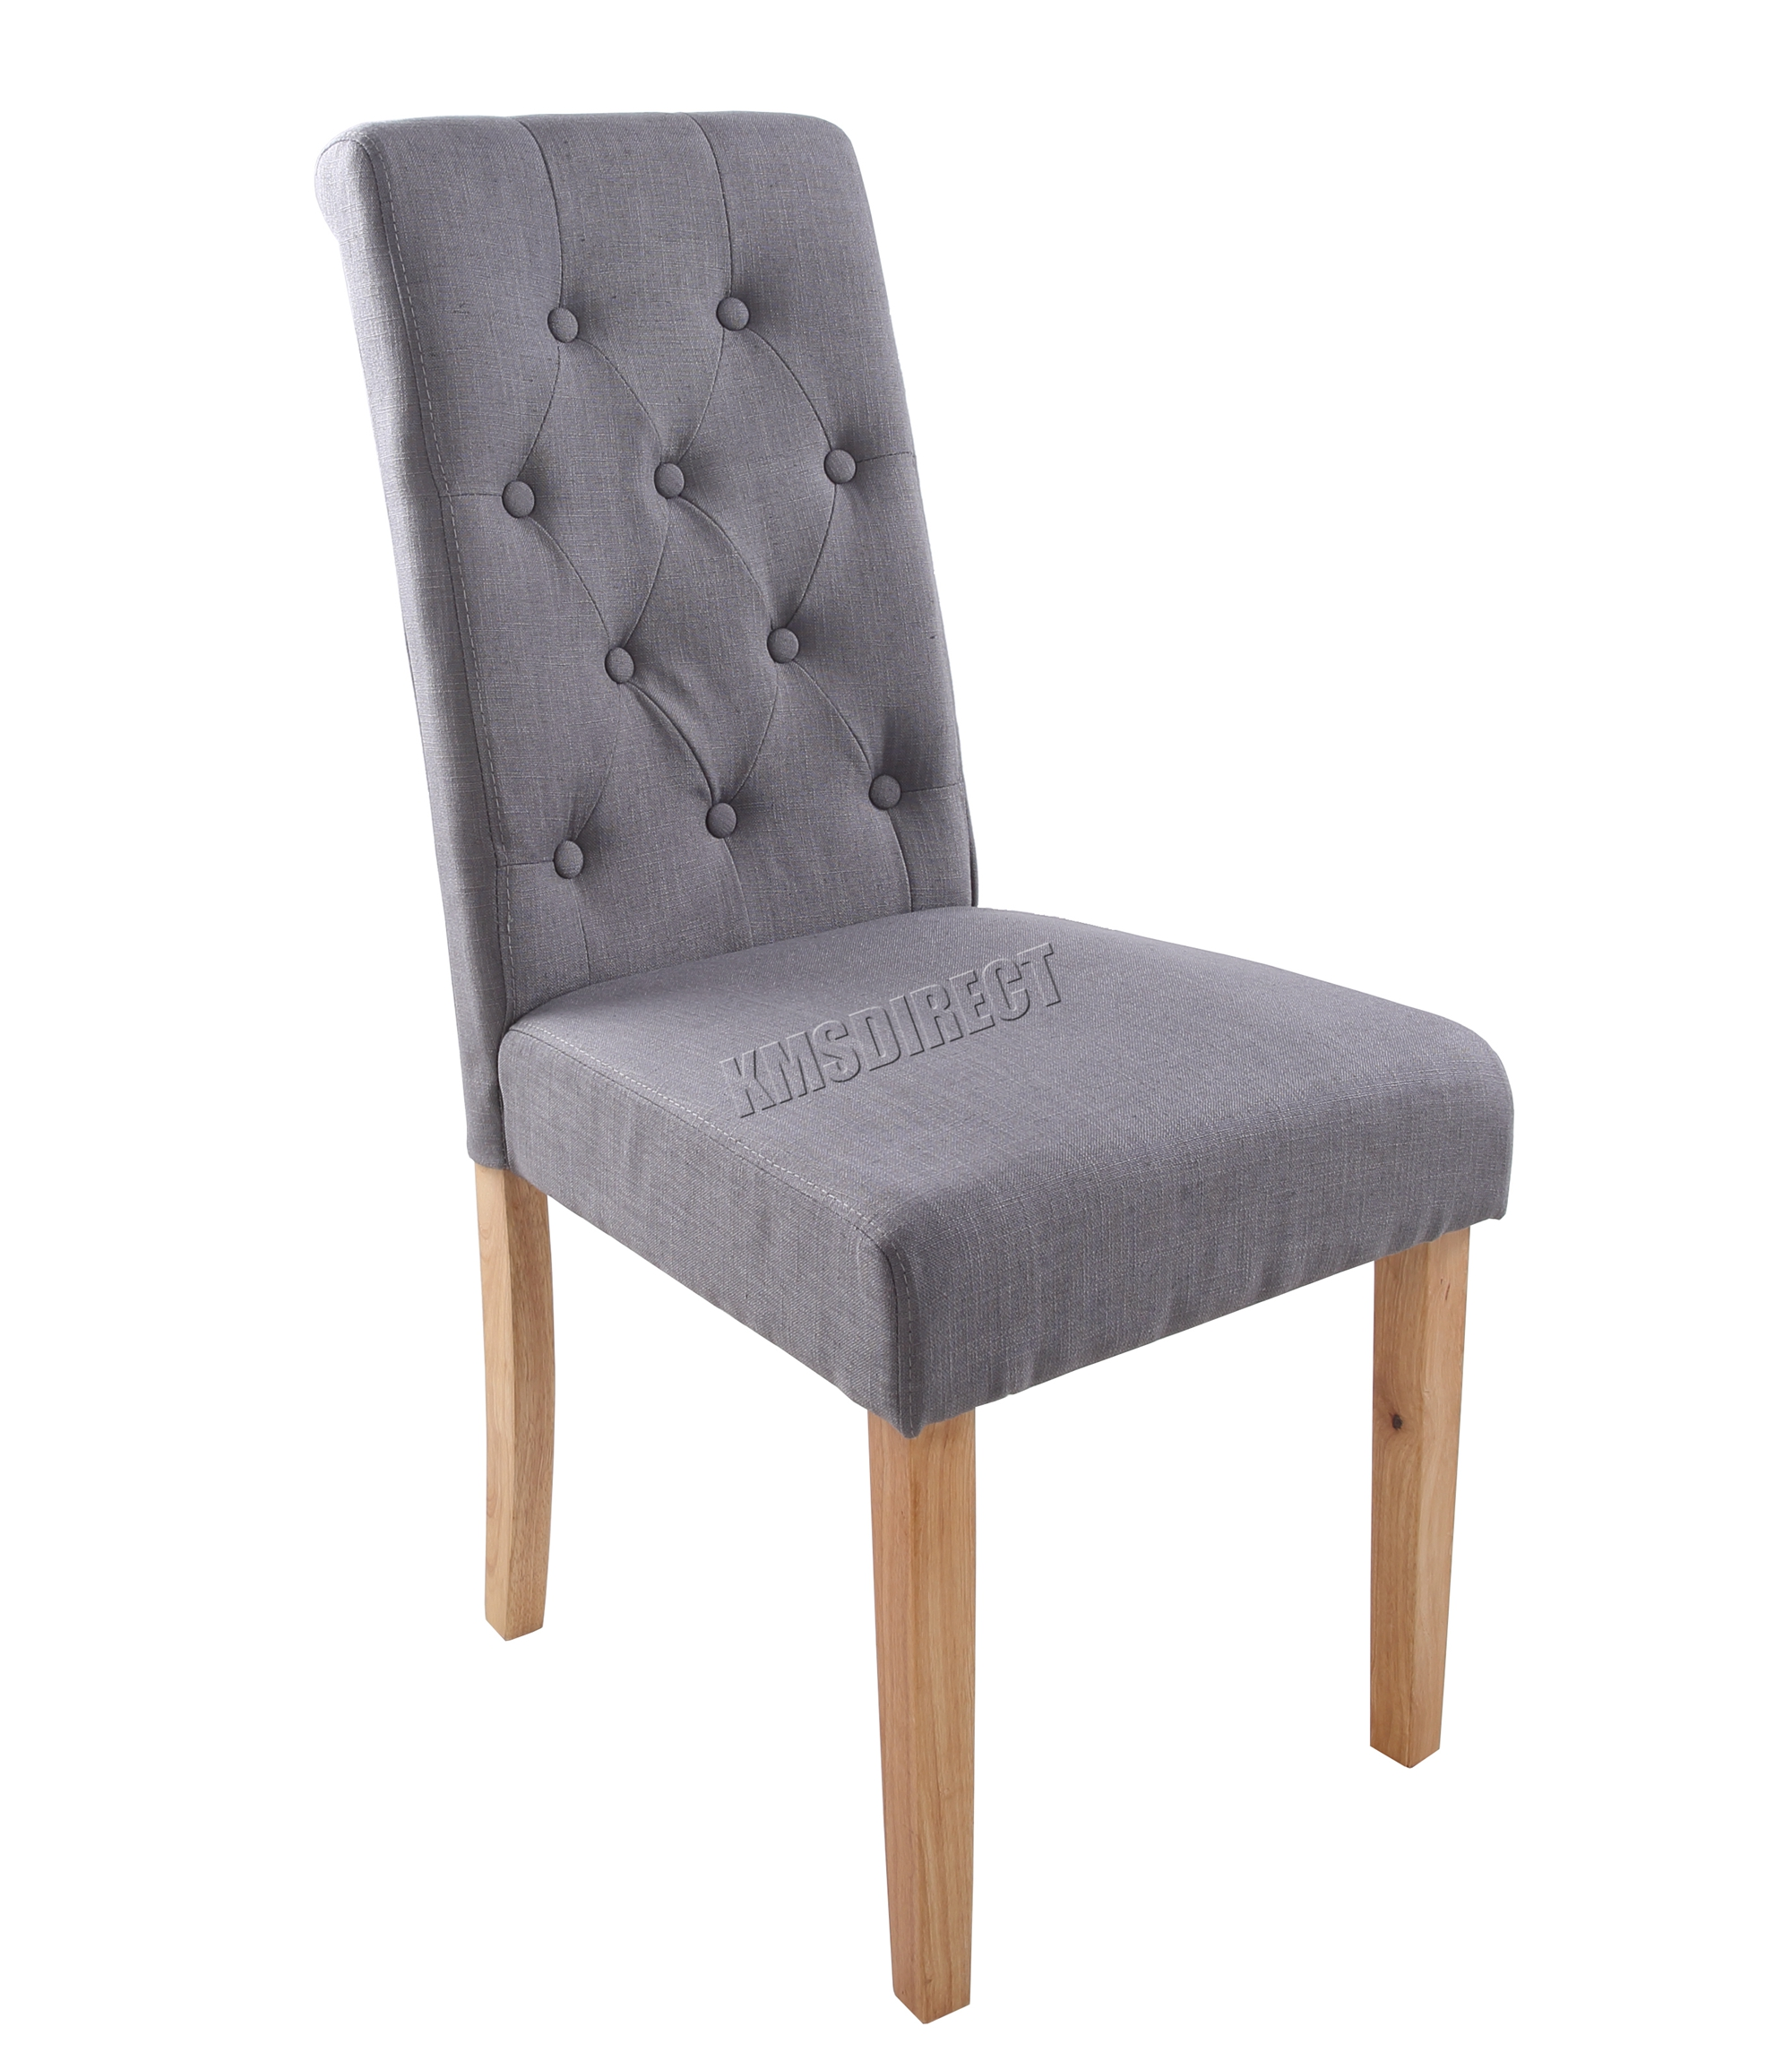 dining chairs fabric twin size pull out bed chair foxhunter grey linen scroll high back